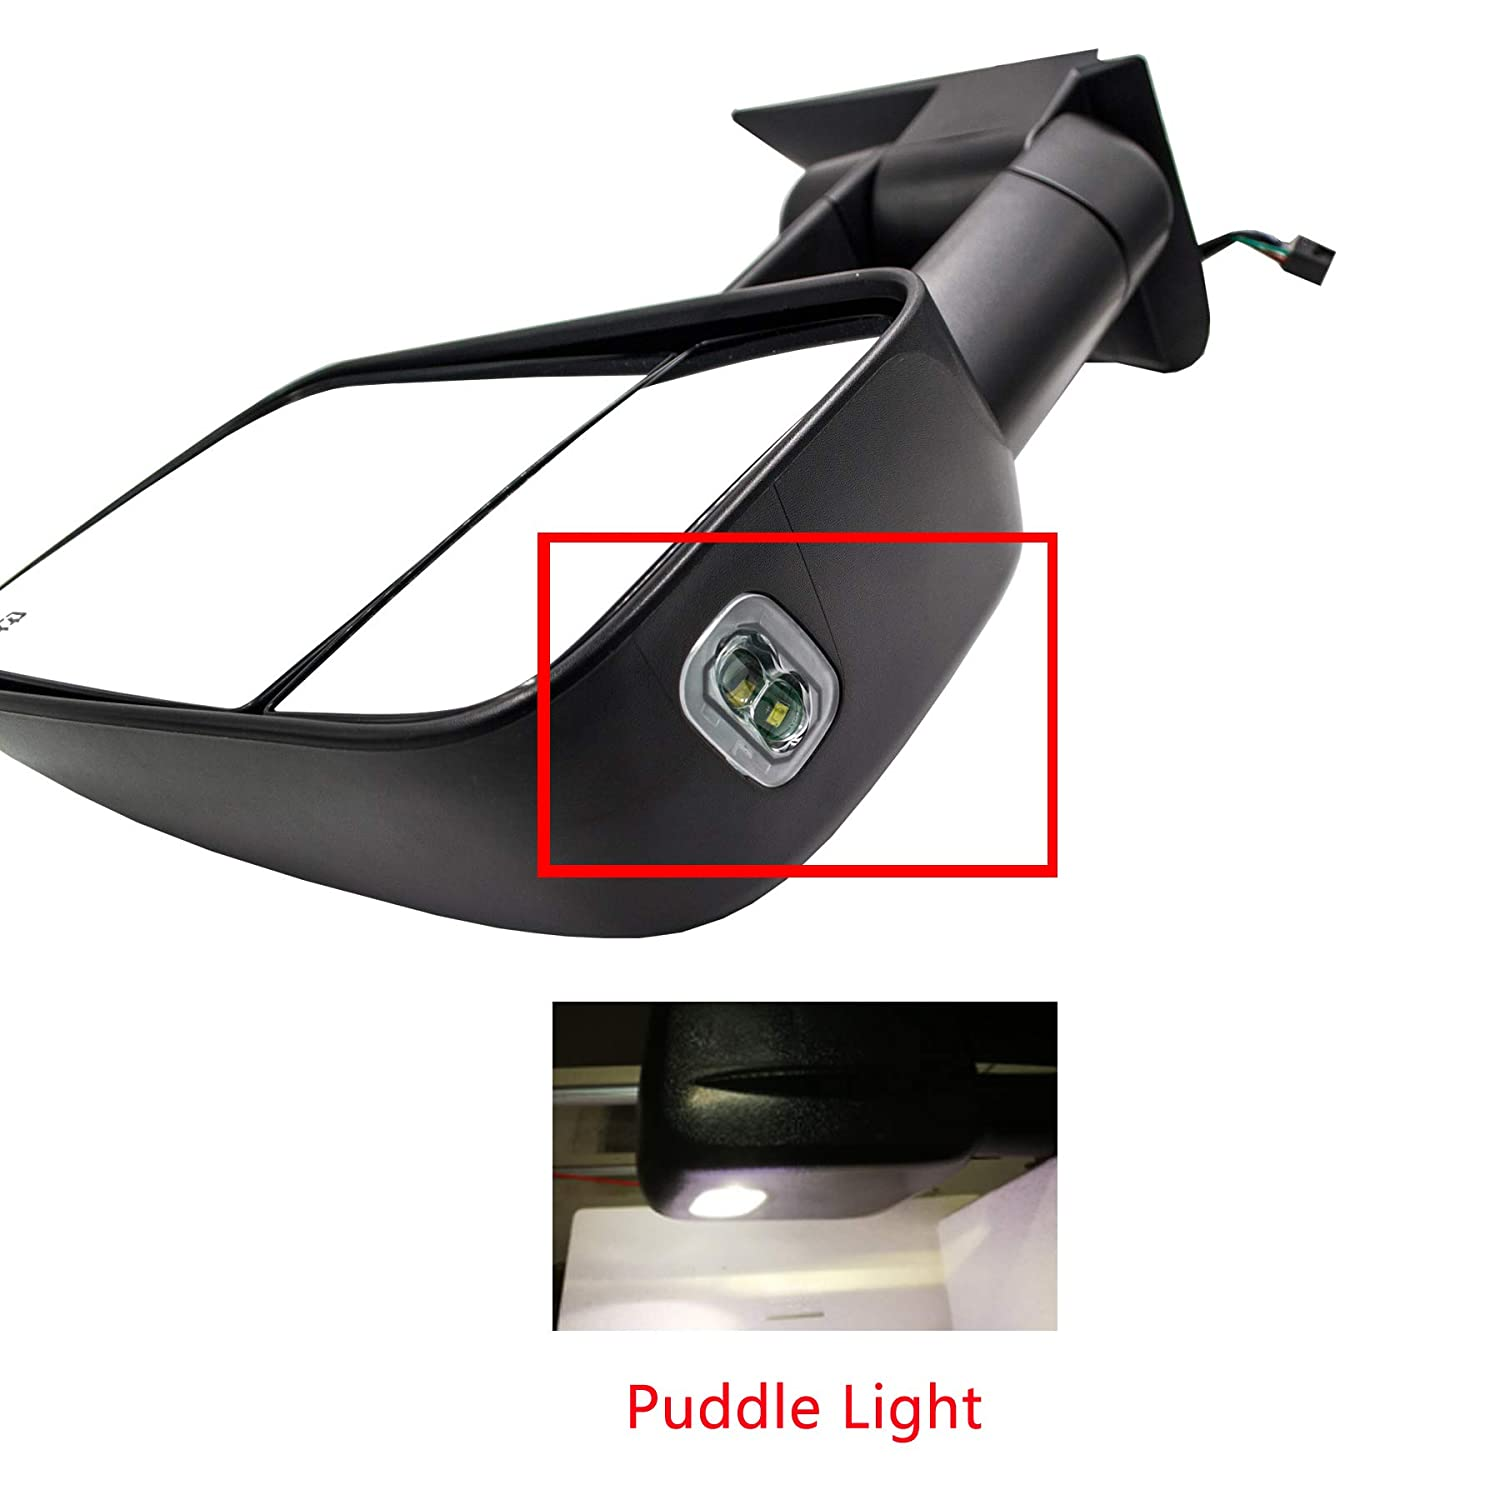 AERDM New 2pcs Power Heated Glass Telescoping Towing Mirrors with Puddle Lights Plug /& Play Mirrors Set Fit for Chevy//GMC//Cadillac Silverado Sierra Avalanche Suburban Tahoe Yukon XL Escalade EXT